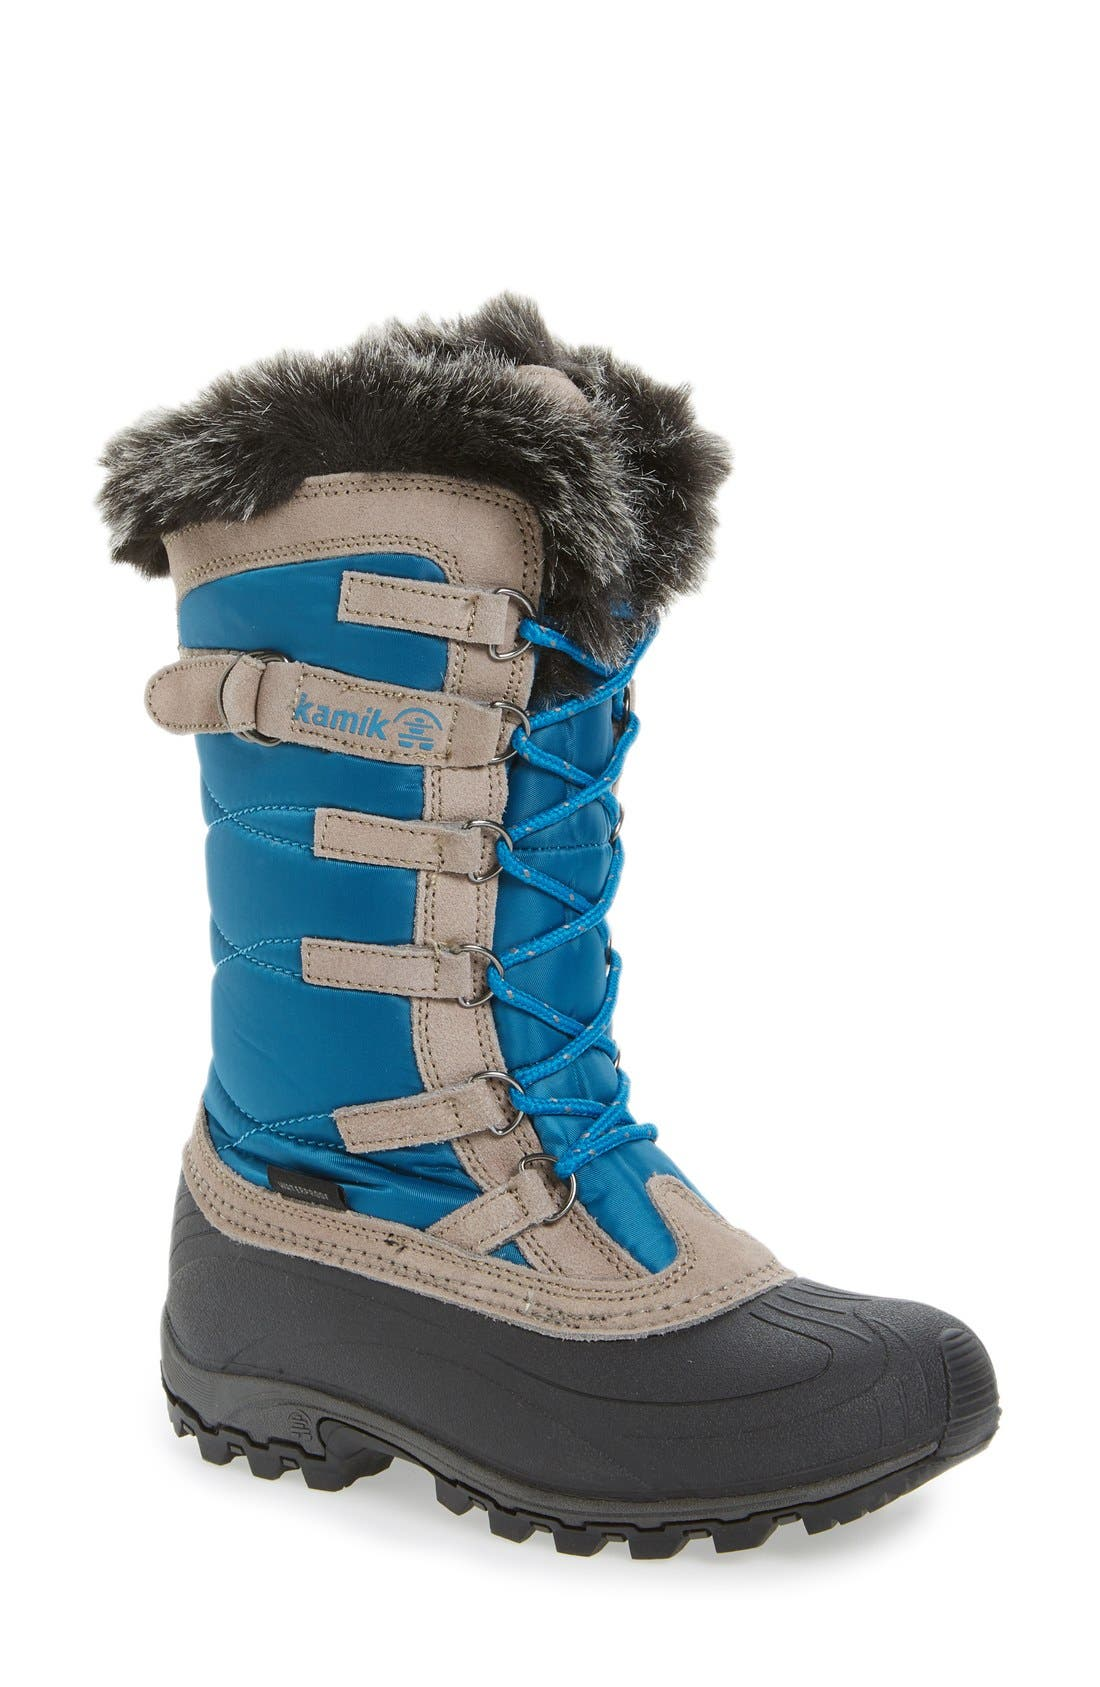 Main Image - Kamik Snowvalley Waterproof Boot with Faux Fur Cuff (Women)